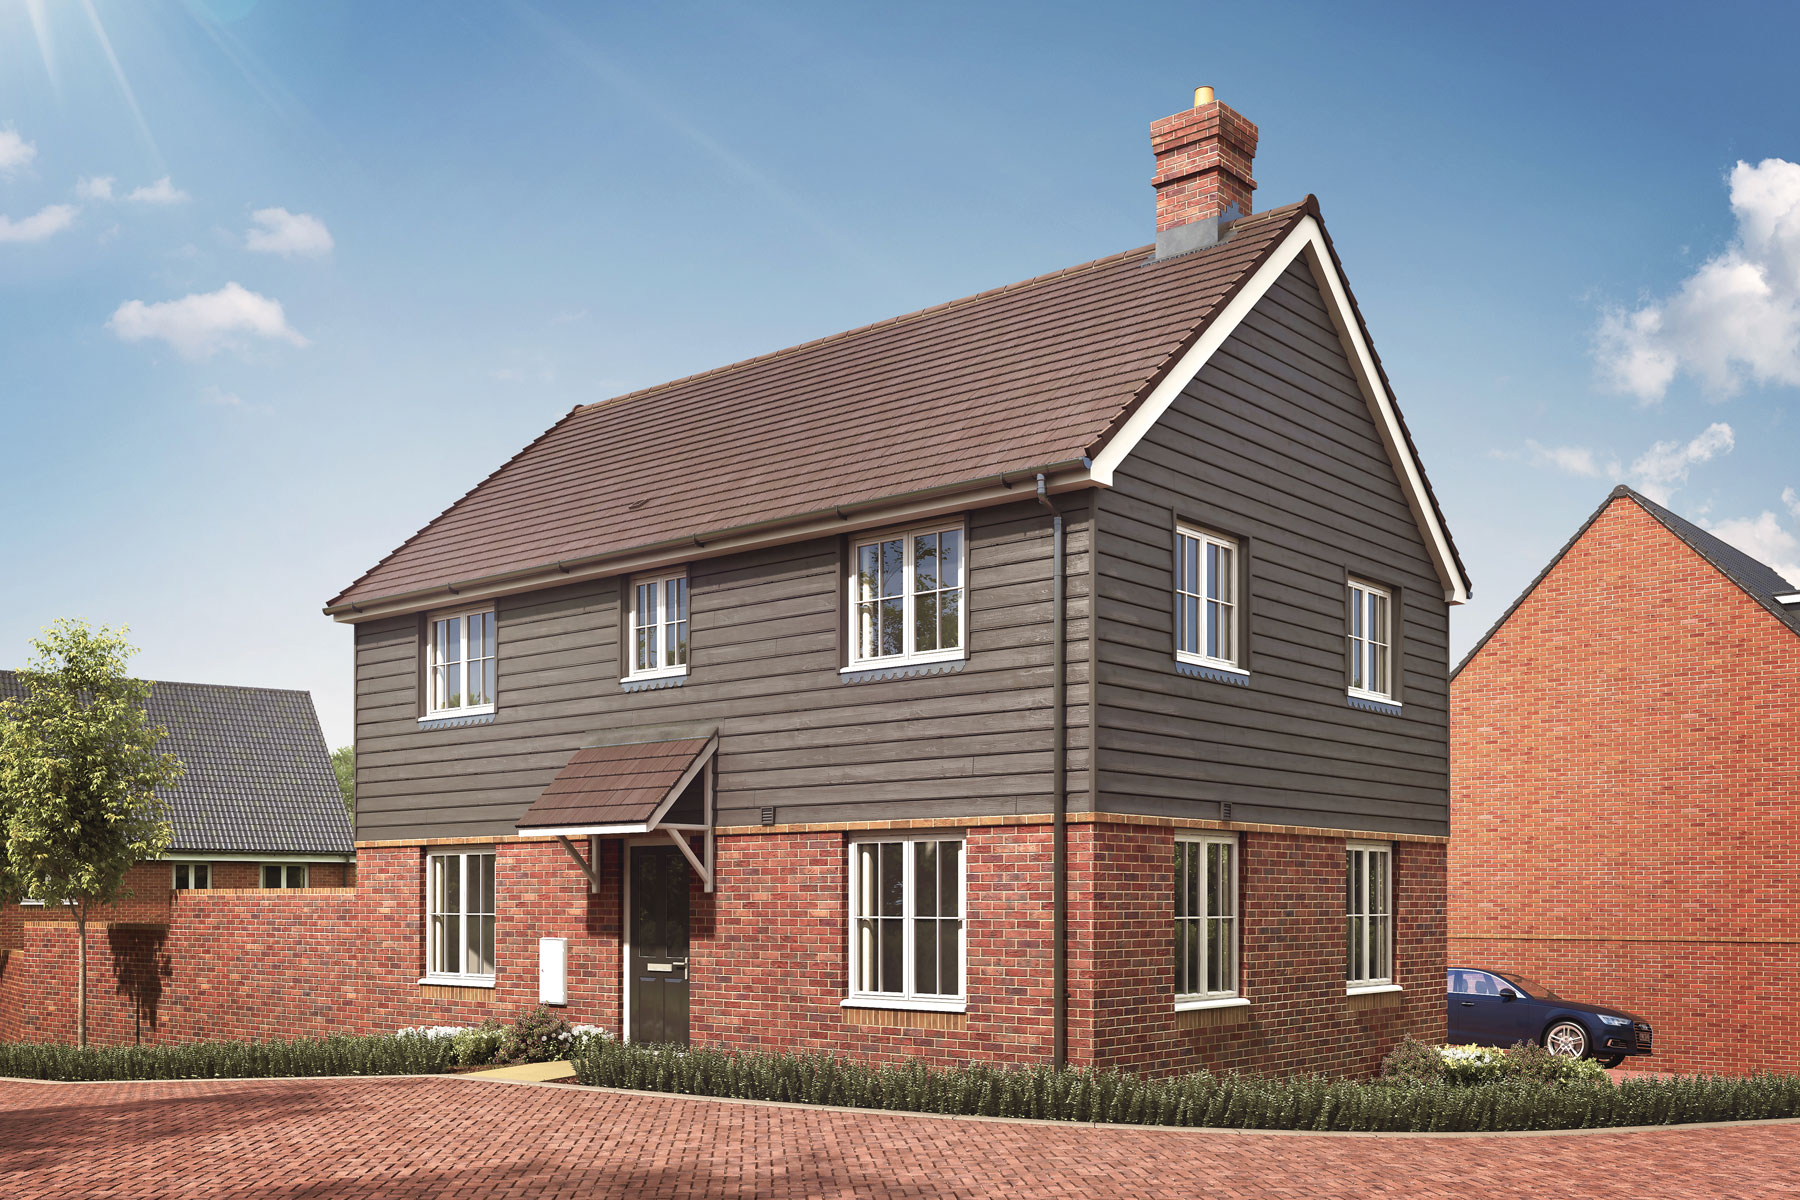 Artist's impression of a typical Chilworth home